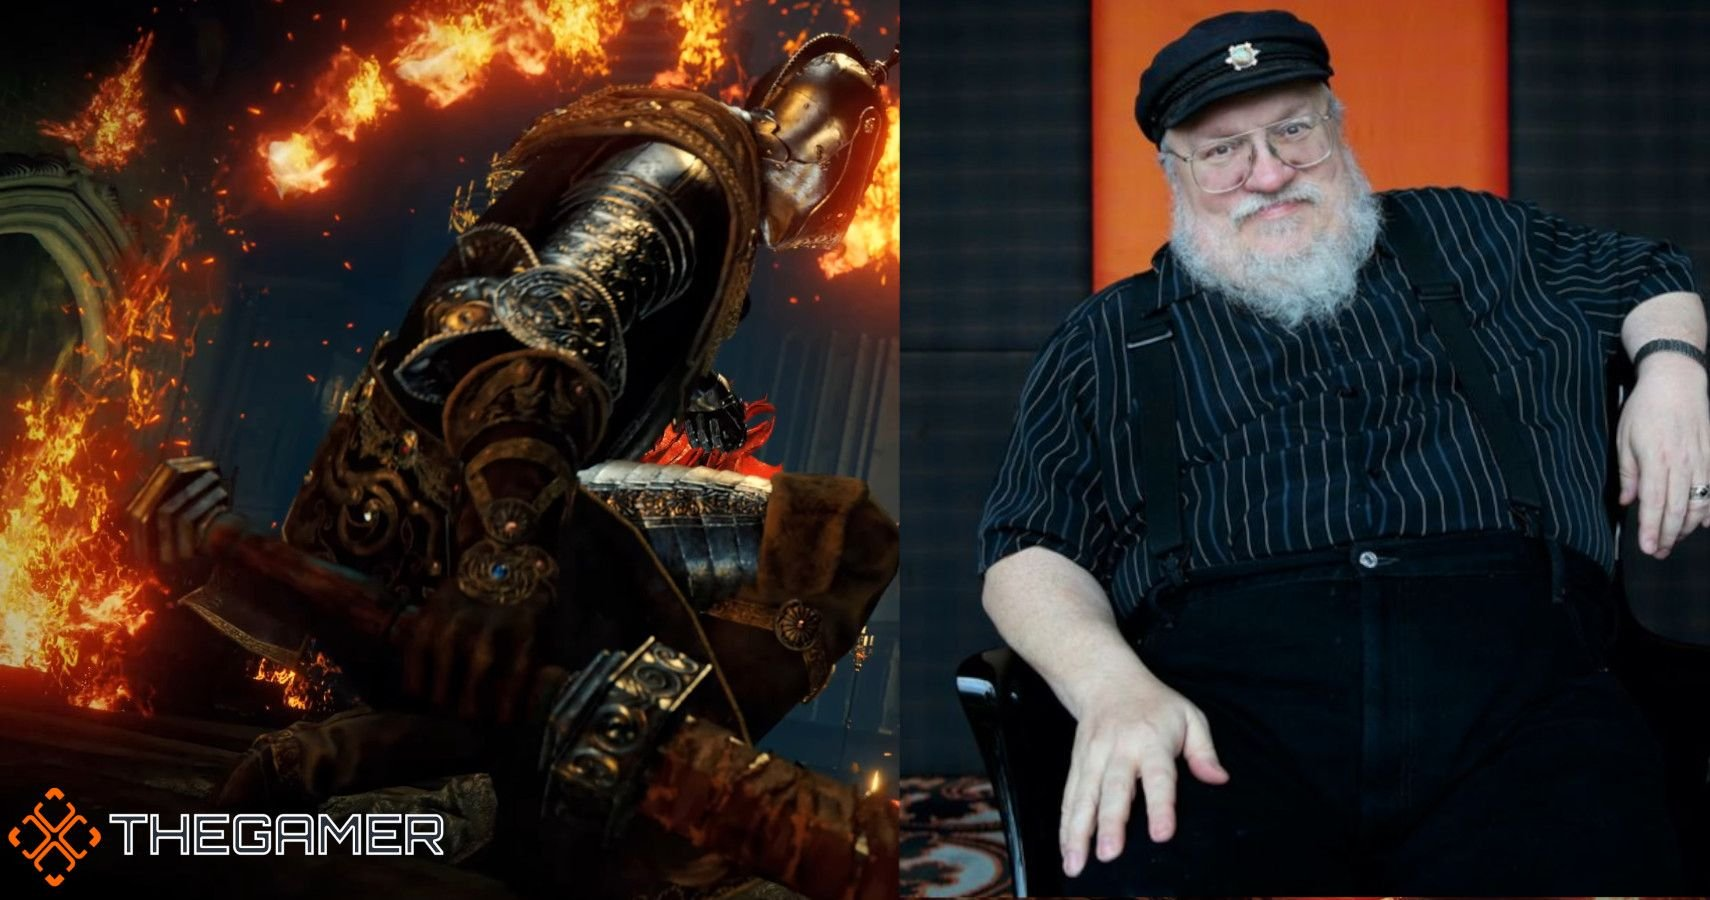 George R.R. Martin Wrote The Foundations Of Elden Ring Which FromSoftware Built Upon